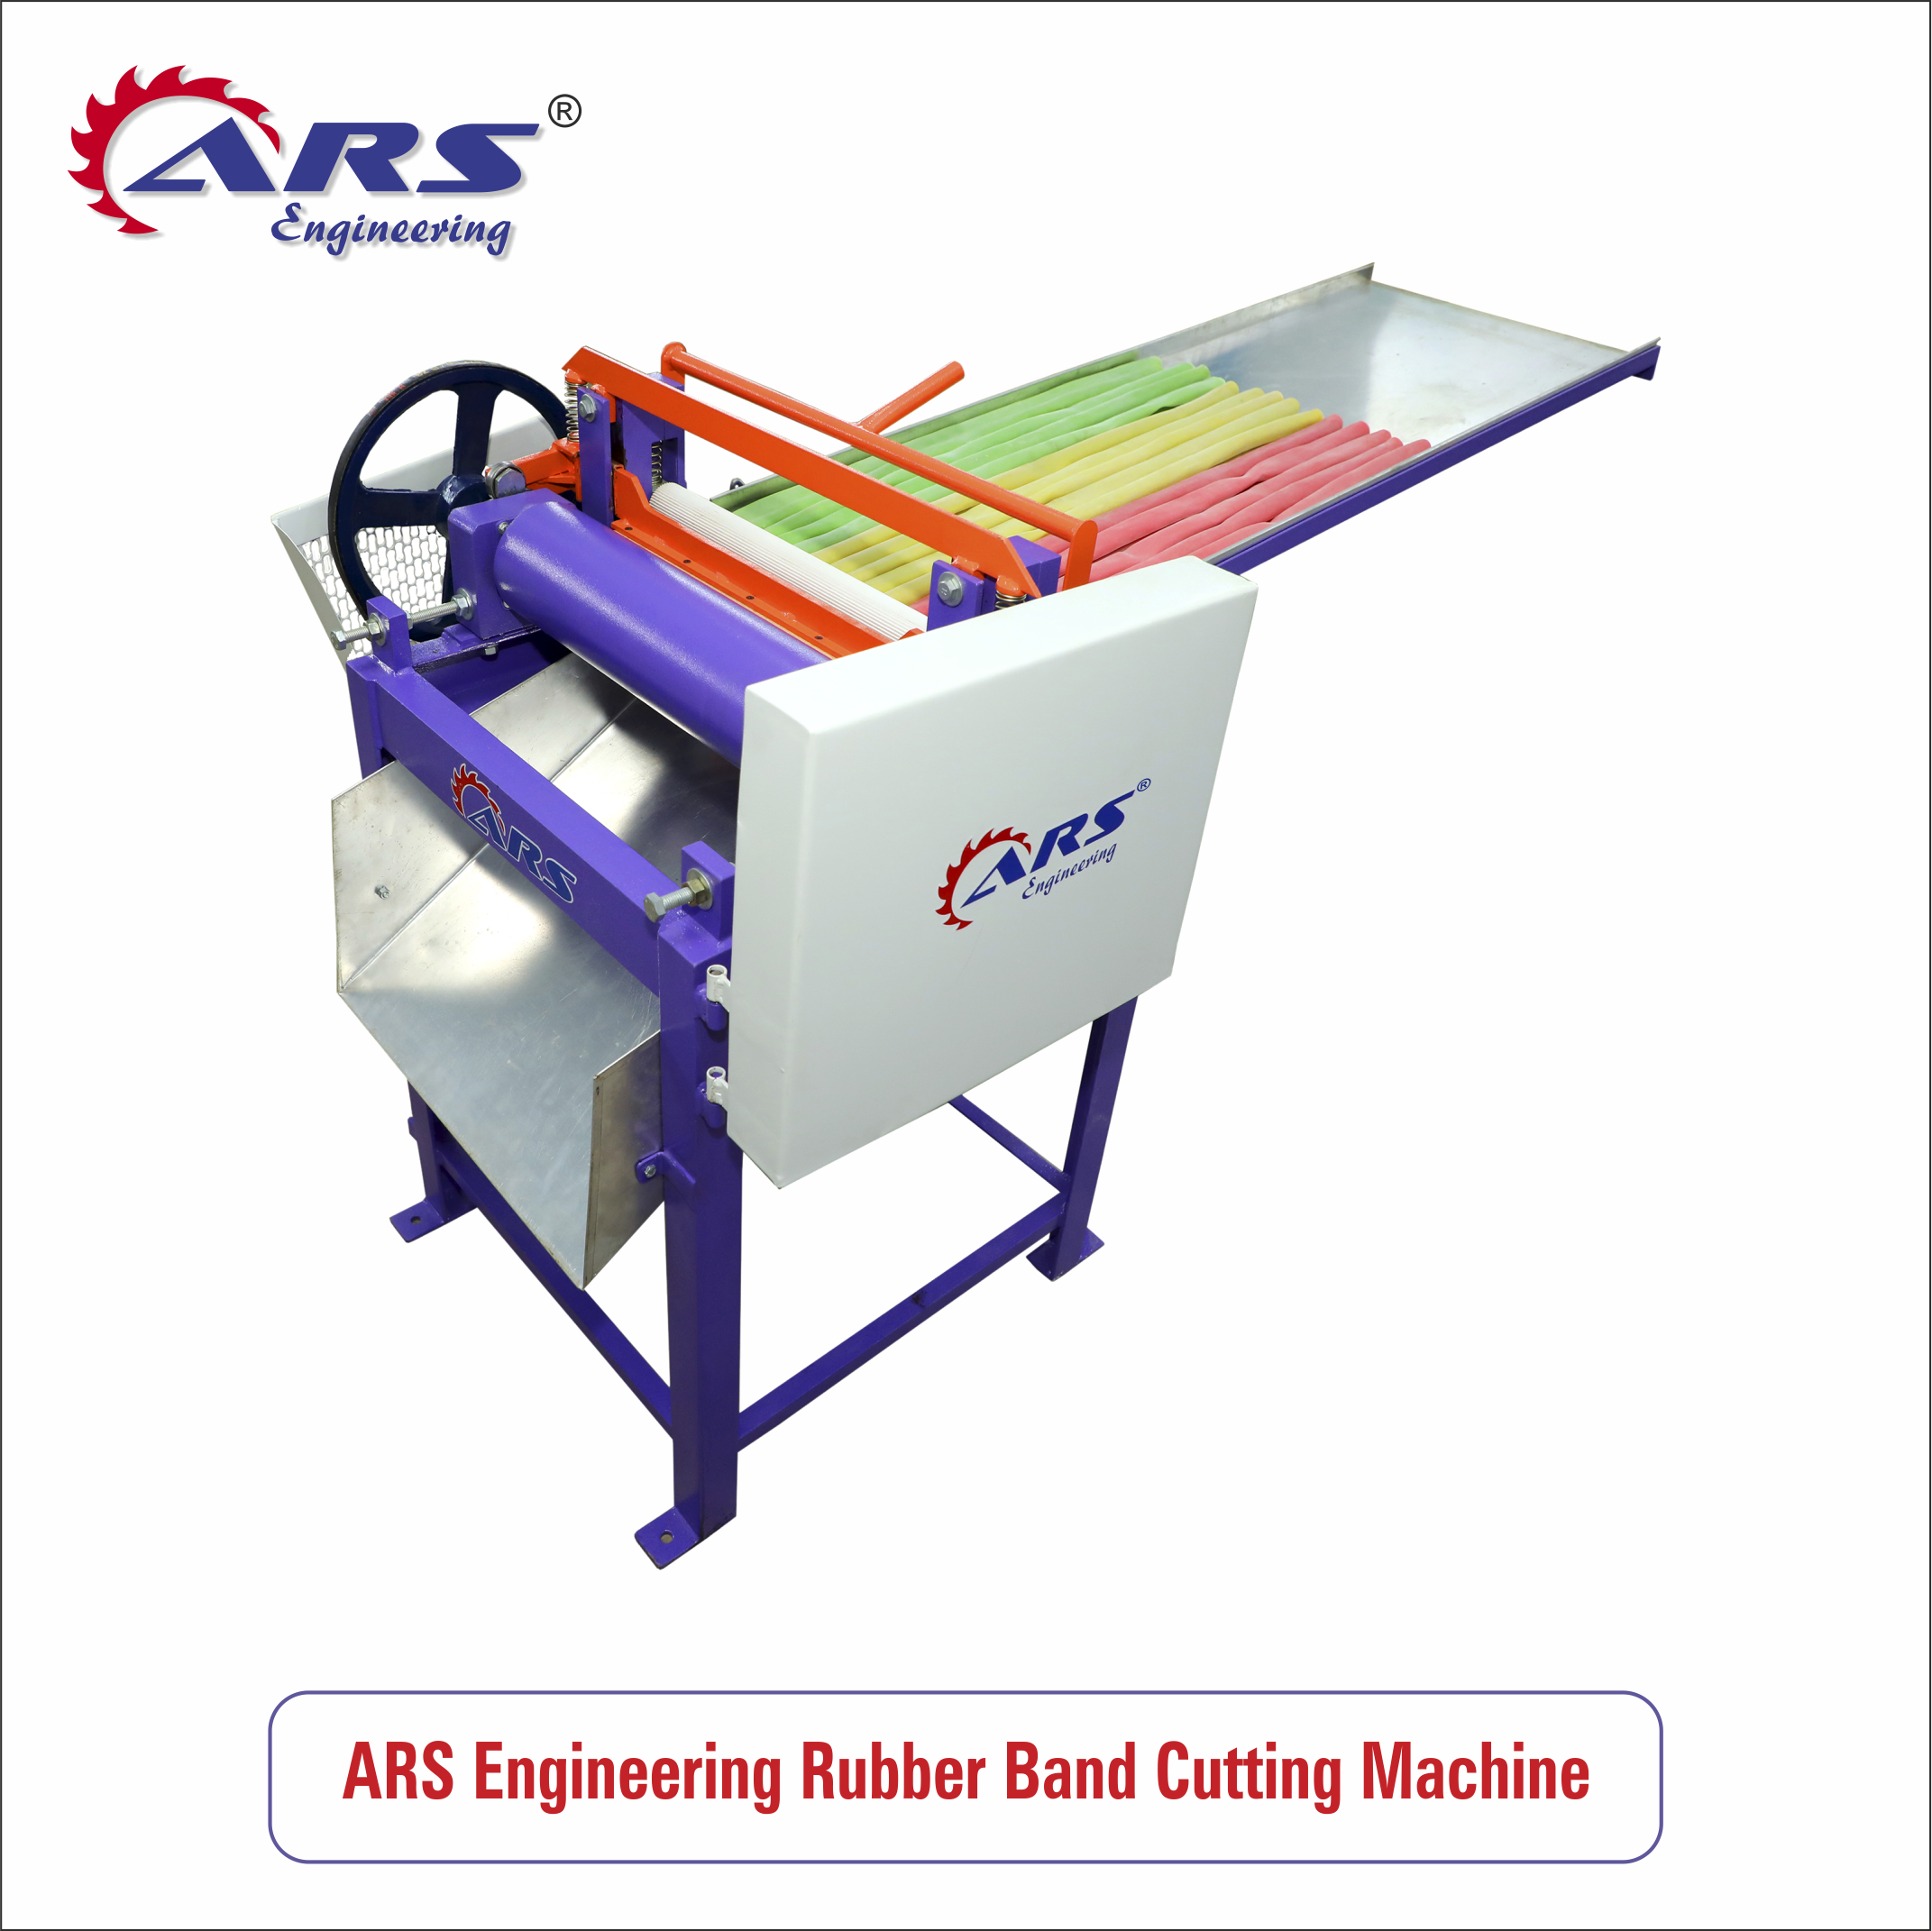 ARS Engineering Rubber Bands Cutting Machine